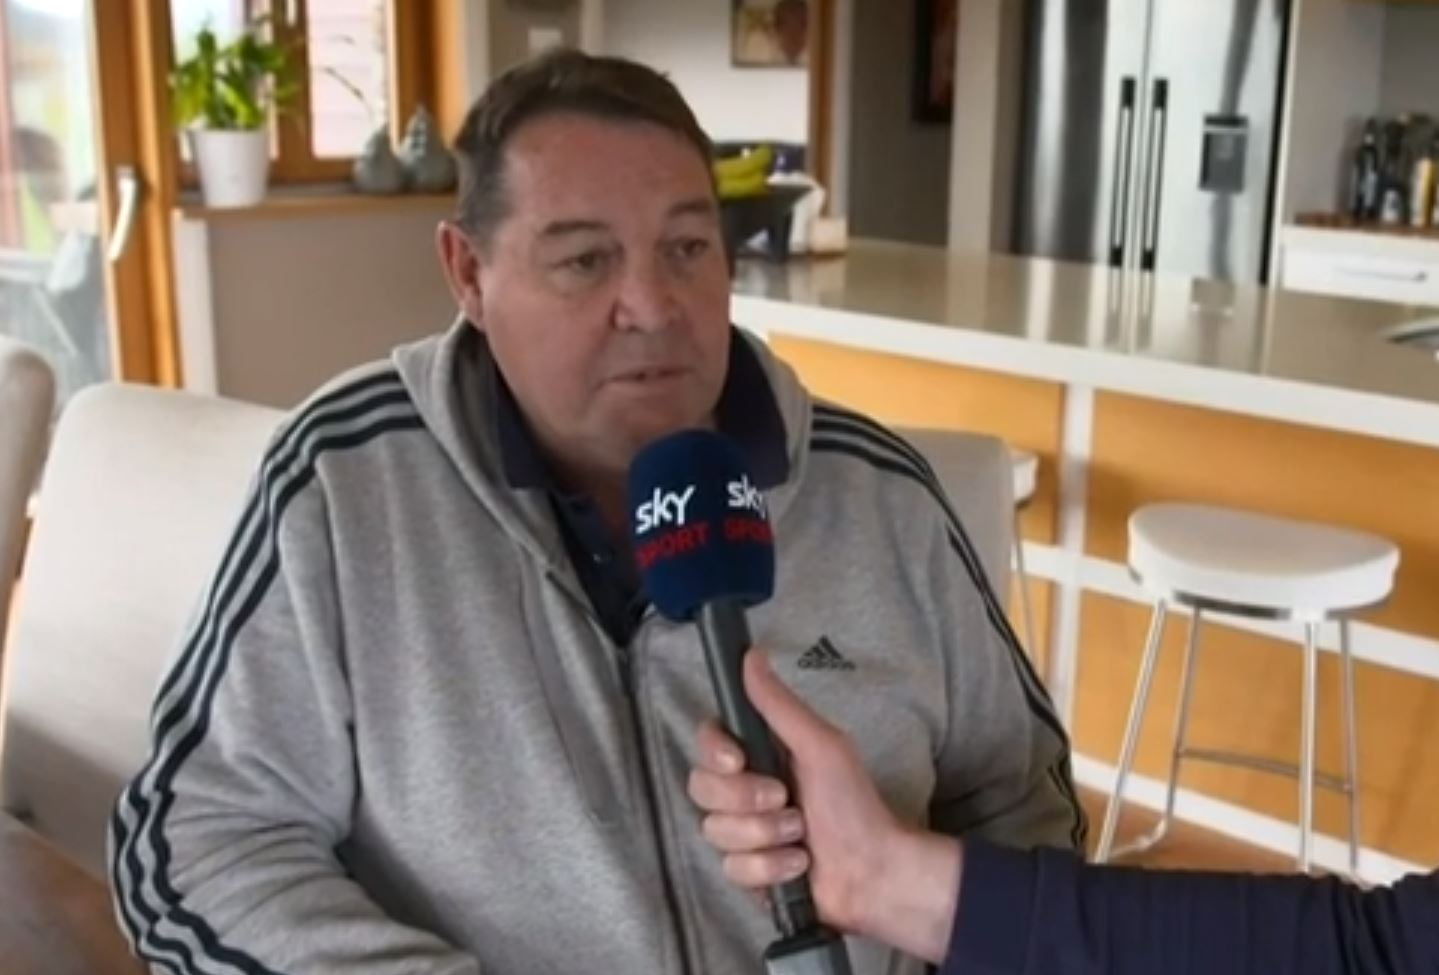 Former All Blacks coach Steve Hansen joins the show for a quick chat on life after the All Blacks...